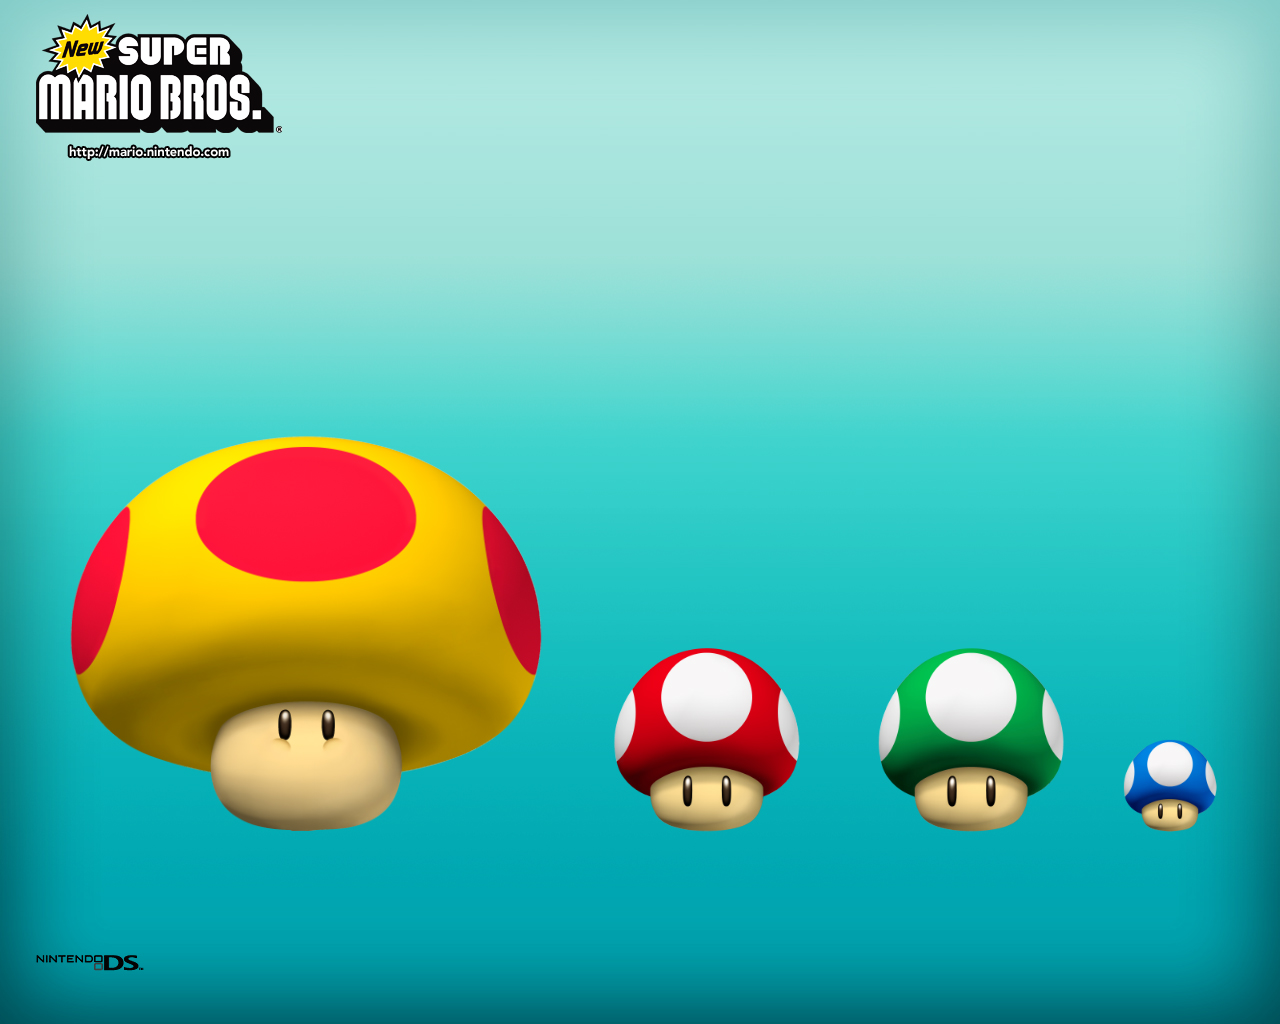 Tmk Downloads Images New Super Mario Bros Nds